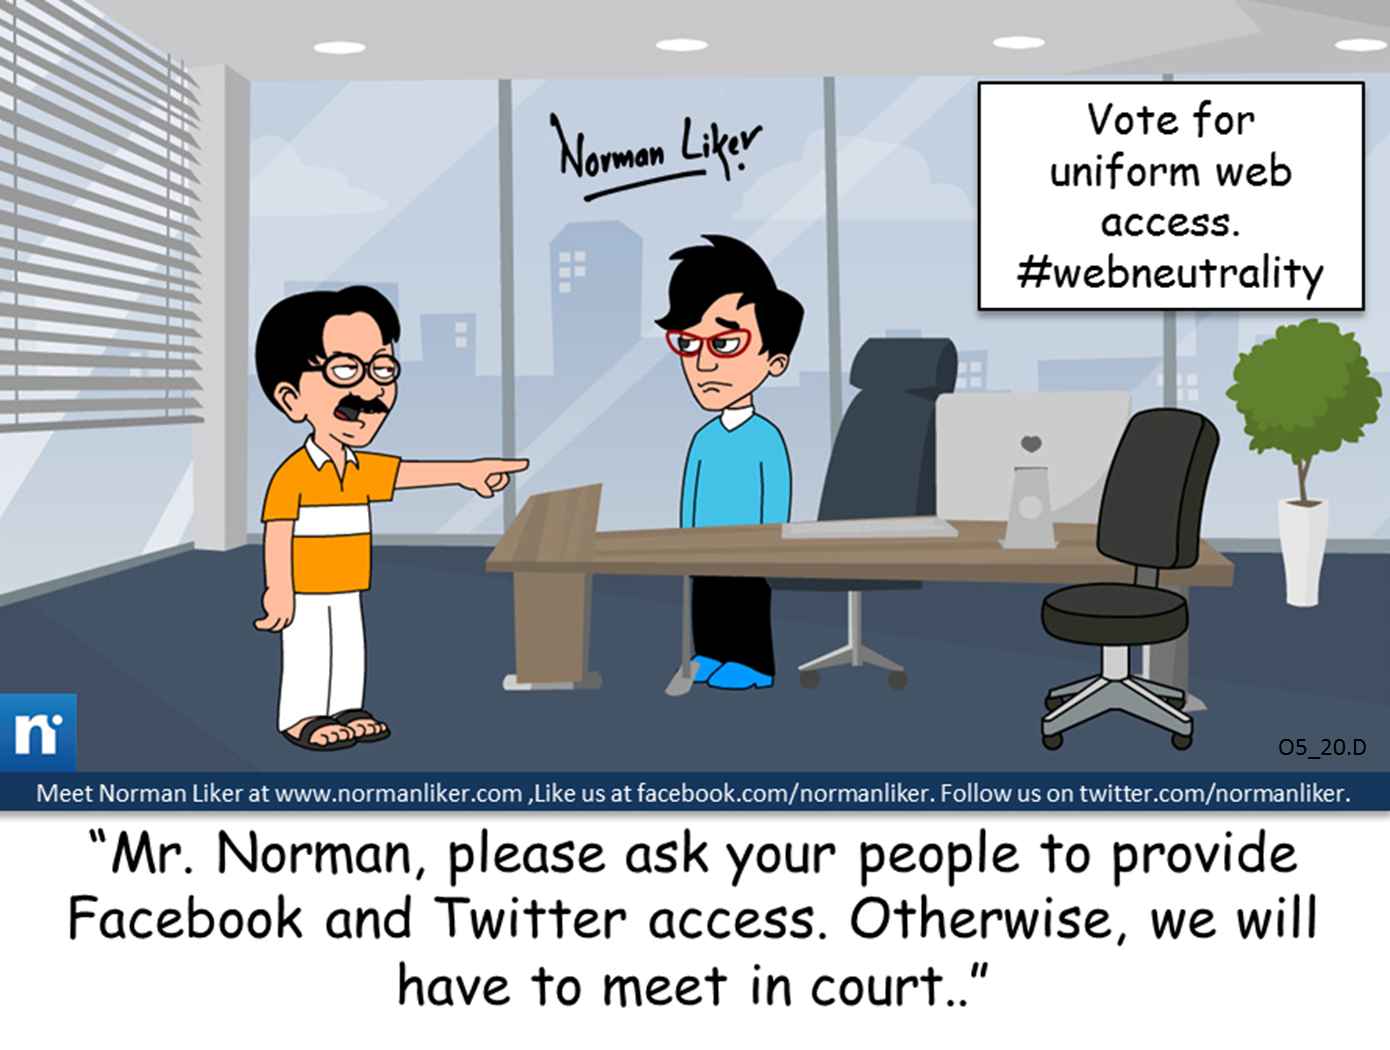 Office Comics: Web Neutrality